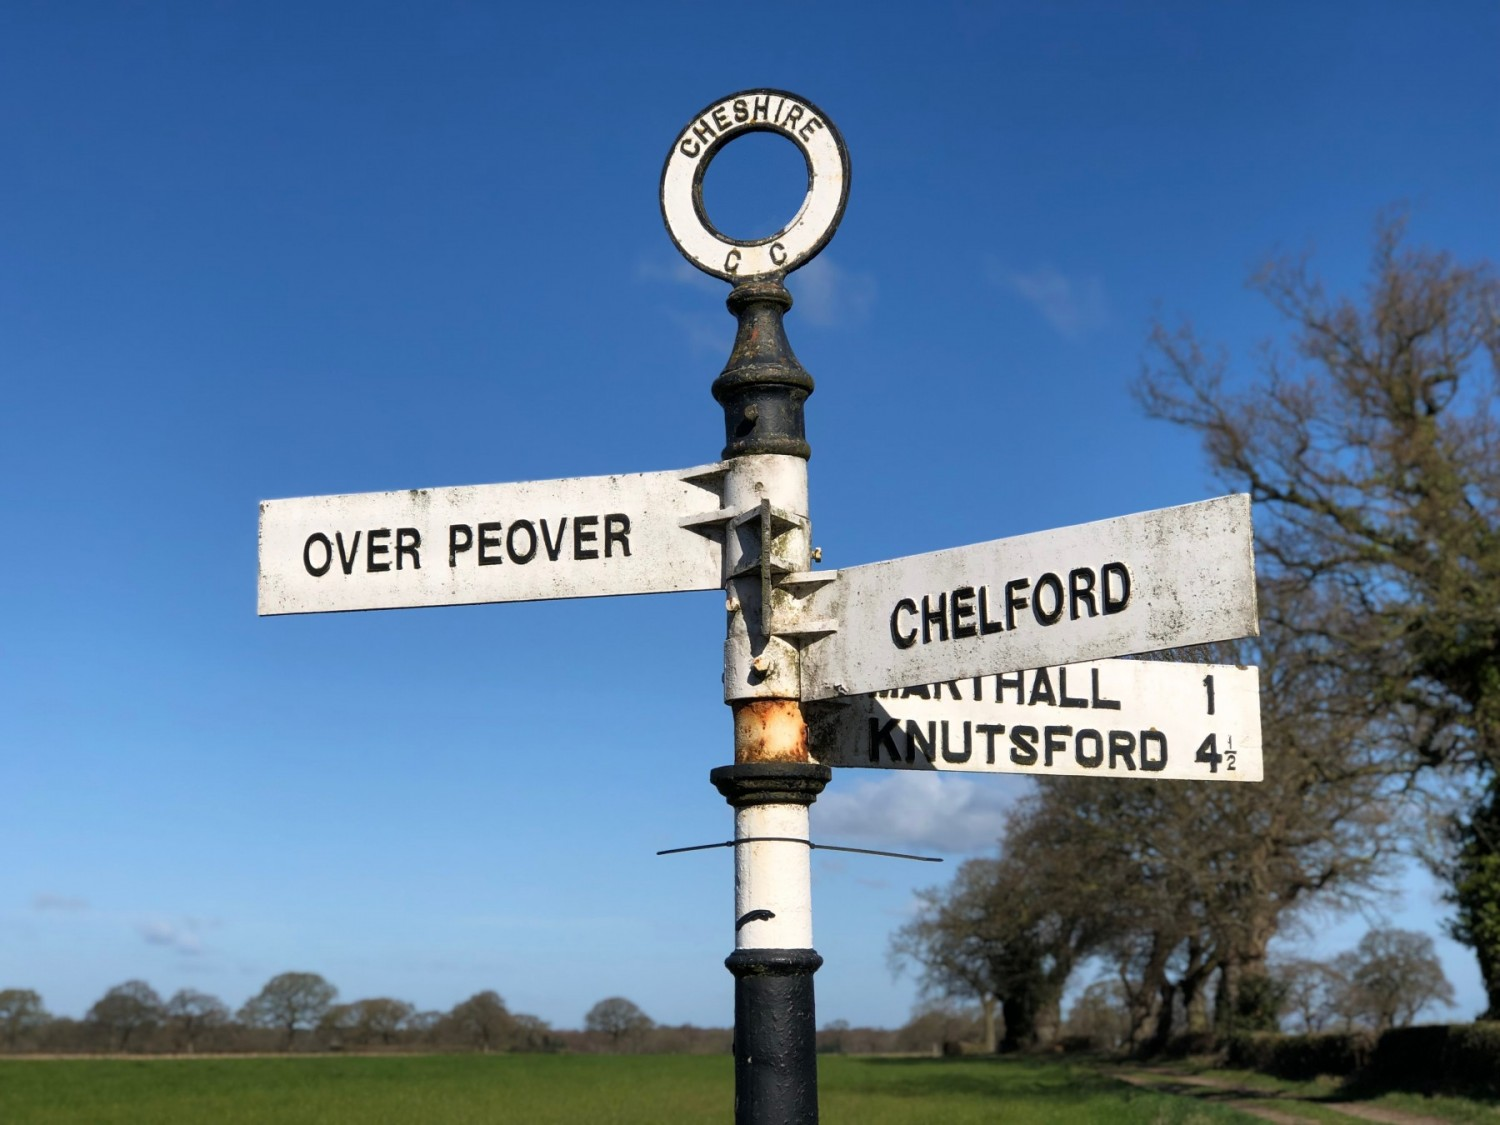 Over Peover Village